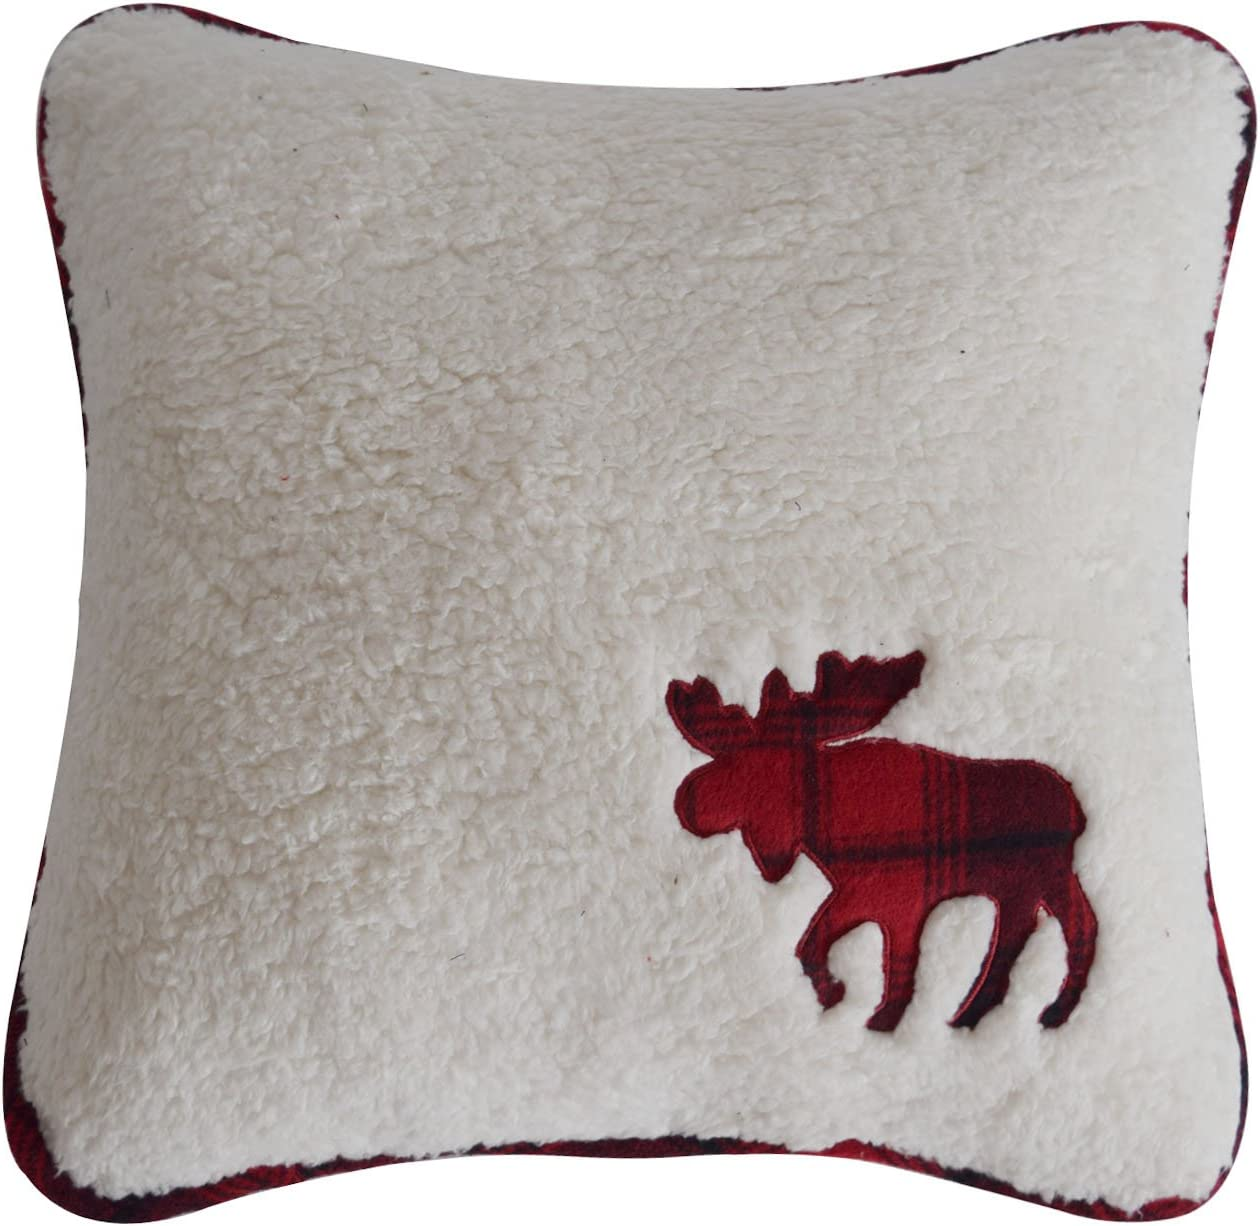 """Gireshome Promotion Chunky Sherpa with Plaid Moose Applique Embroidery Pillow Case, Sofa Cushion Cover, 18"""" x 18"""" 45 x 45 cm"""